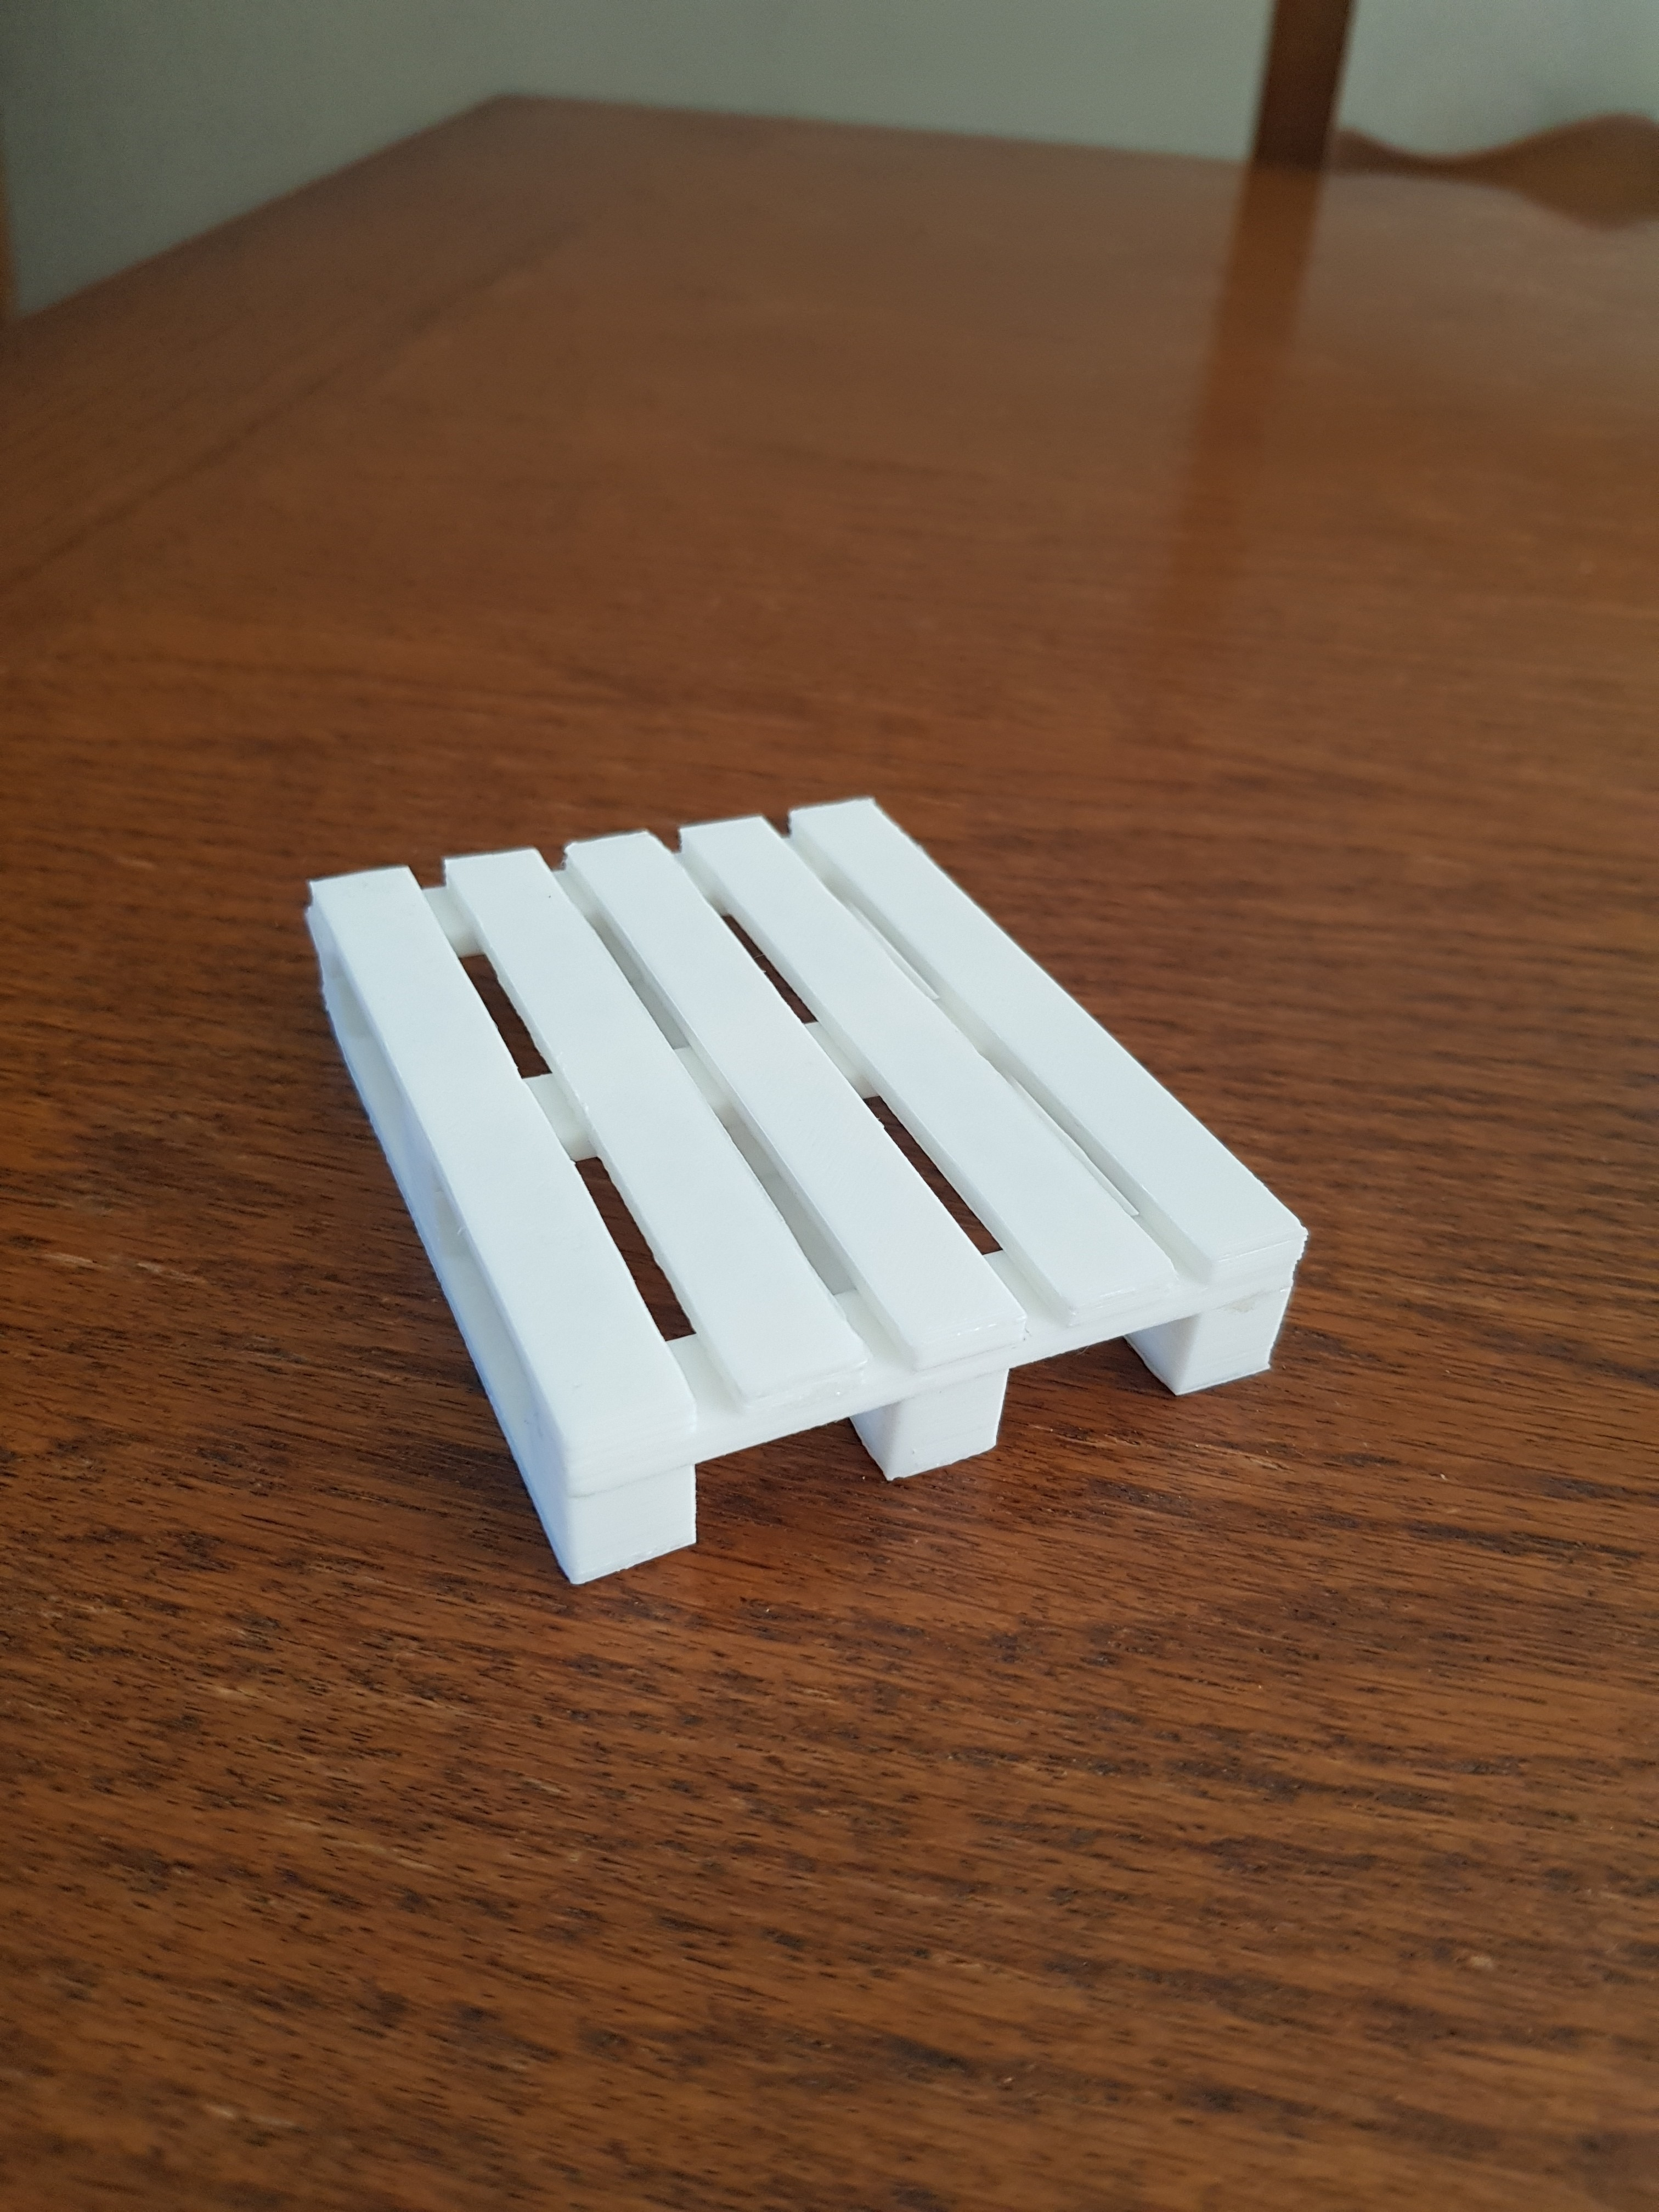 20170806_154110.jpg Download free STL file Pallet coaster • 3D print object, Kana3D